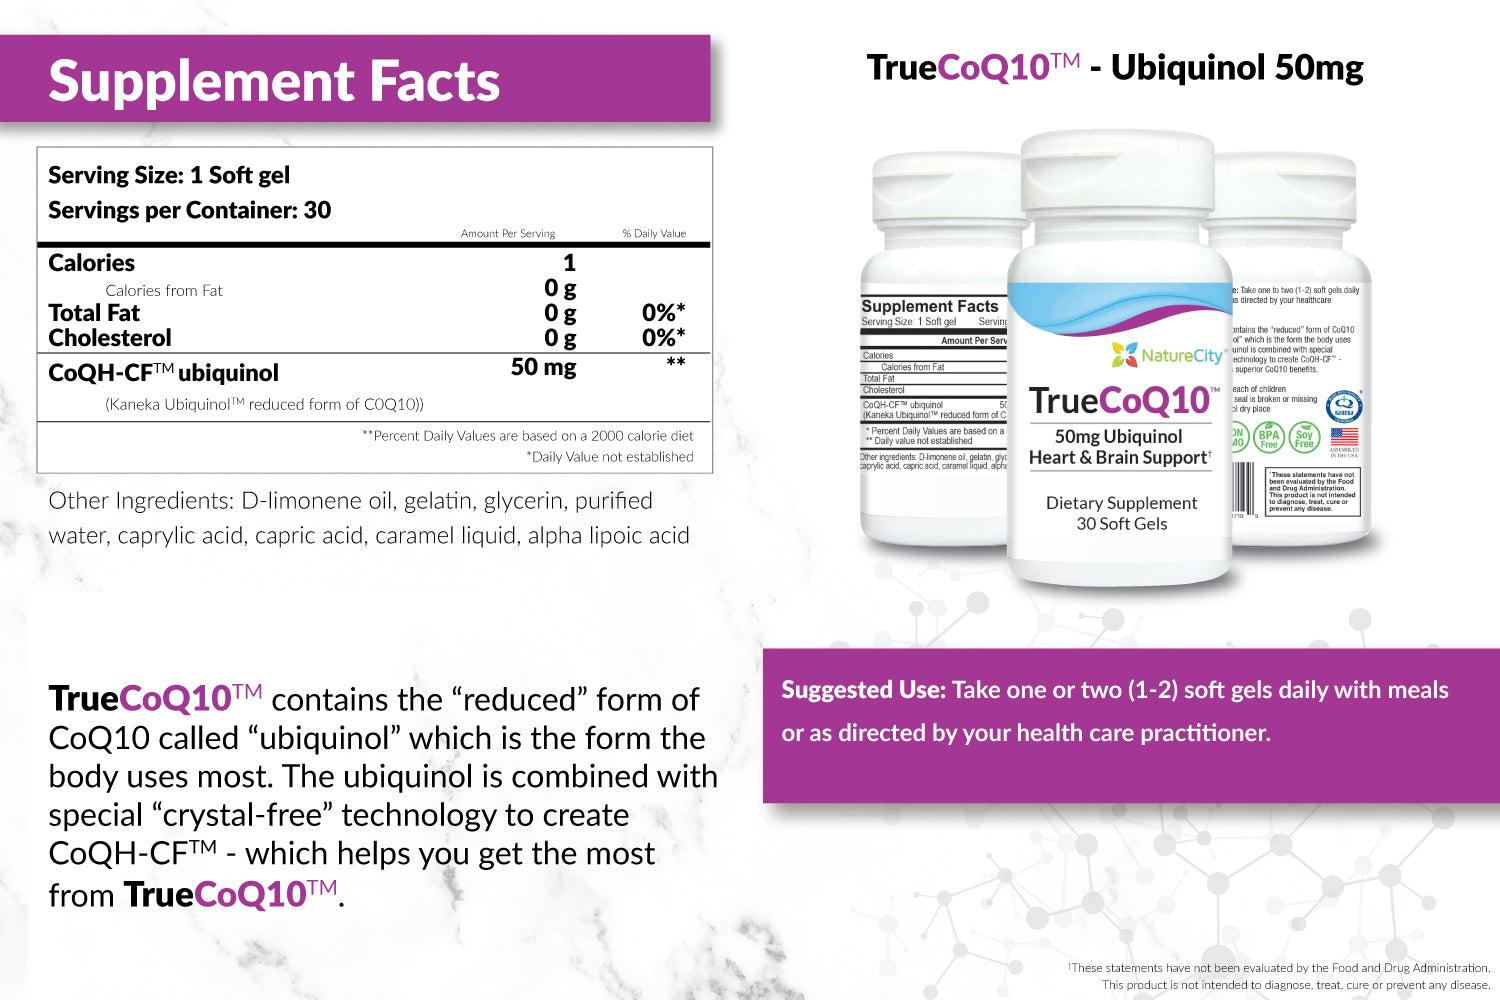 TrueCoQ10 50mg Supplement Facts and Suggested Use